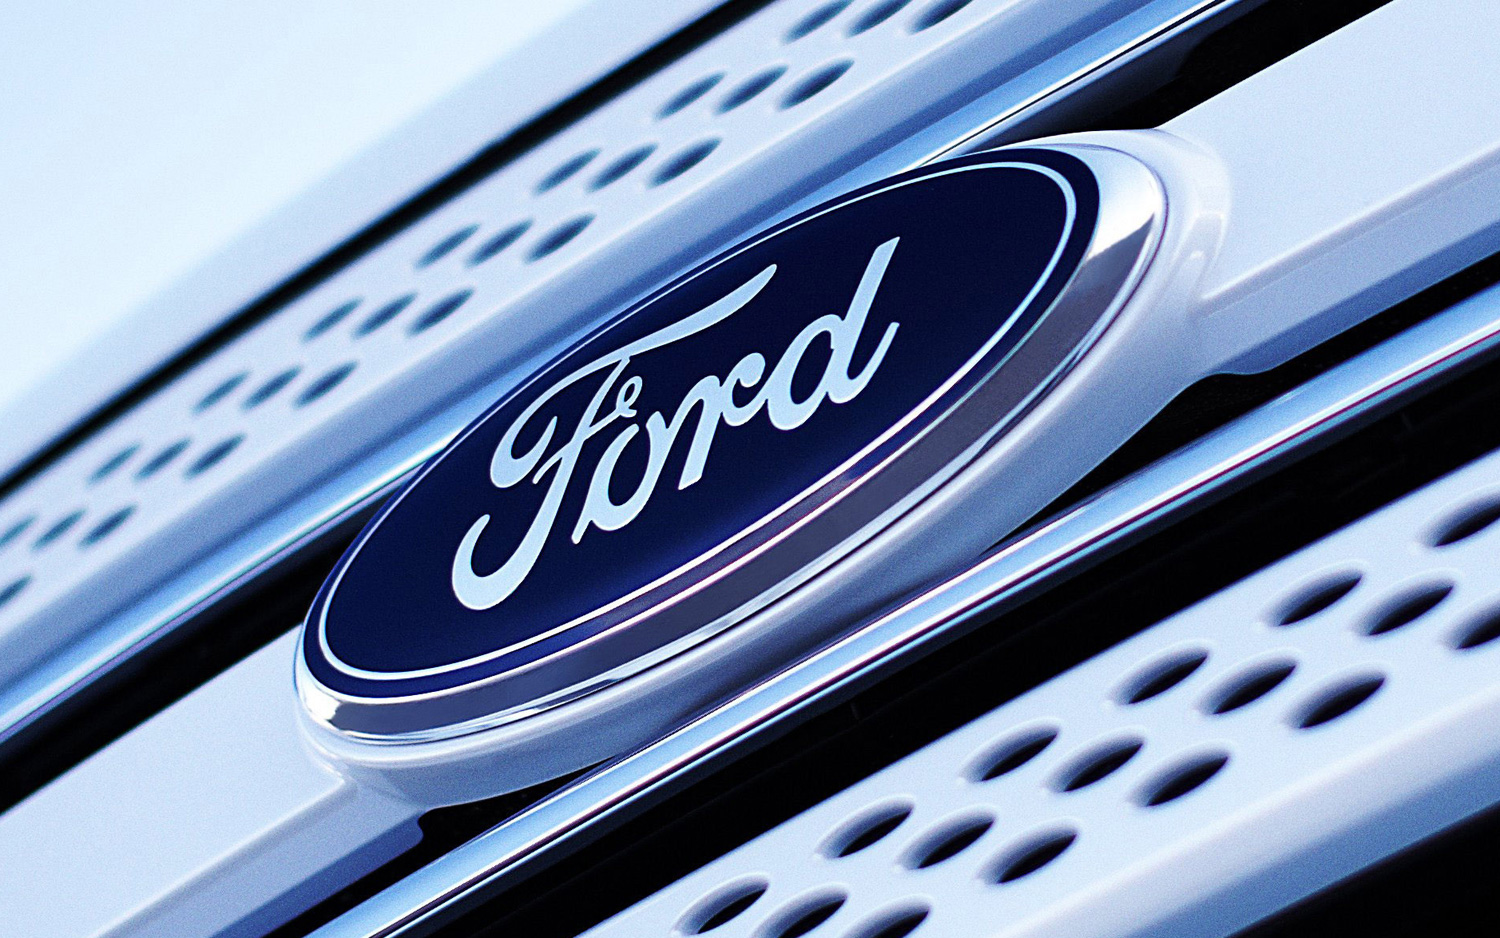 Ford to use Google's automotive tech and cloud services